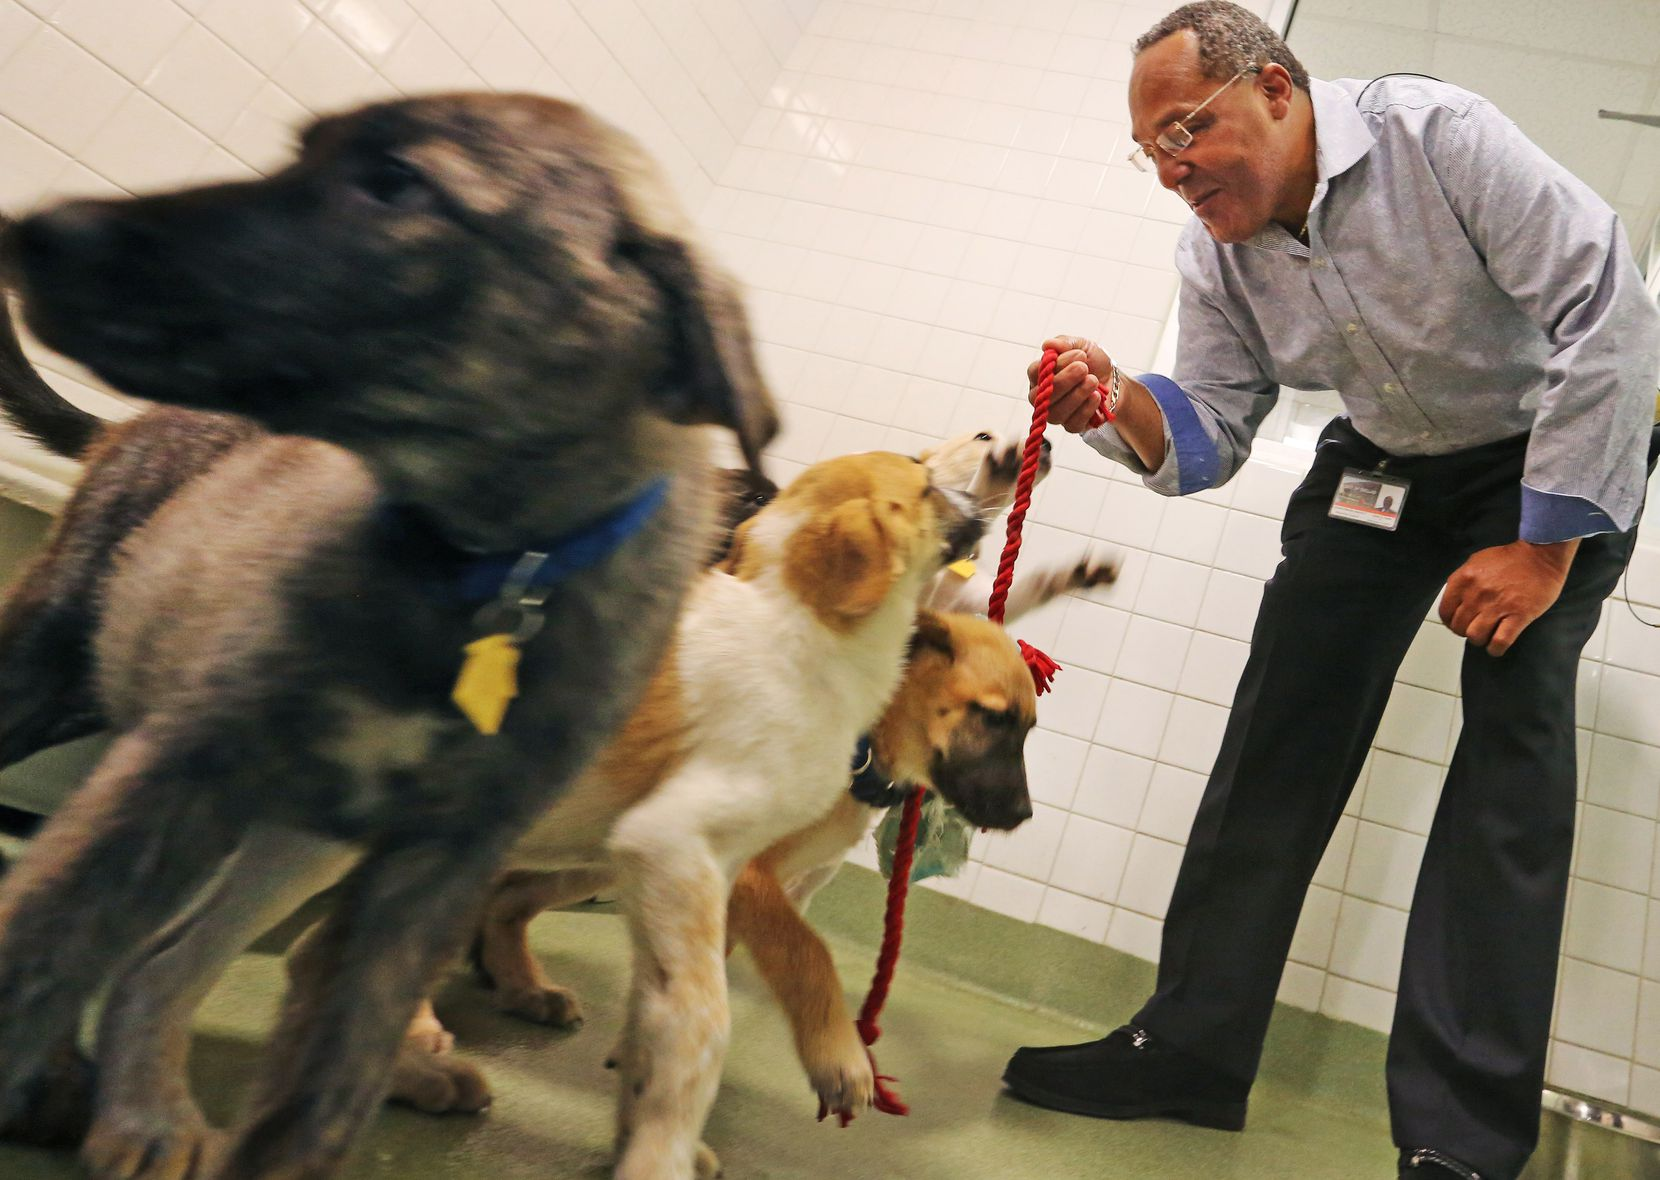 New Dallas City Council member Kevin Felder visits with some puppies as he stops by the Dallas Animal Services shelter to talk about his possible pilot program to train homeless people to catch and train dogs, photographed on Wednesday, July 19, 2017. (Louis DeLuca/The Dallas Morning News)